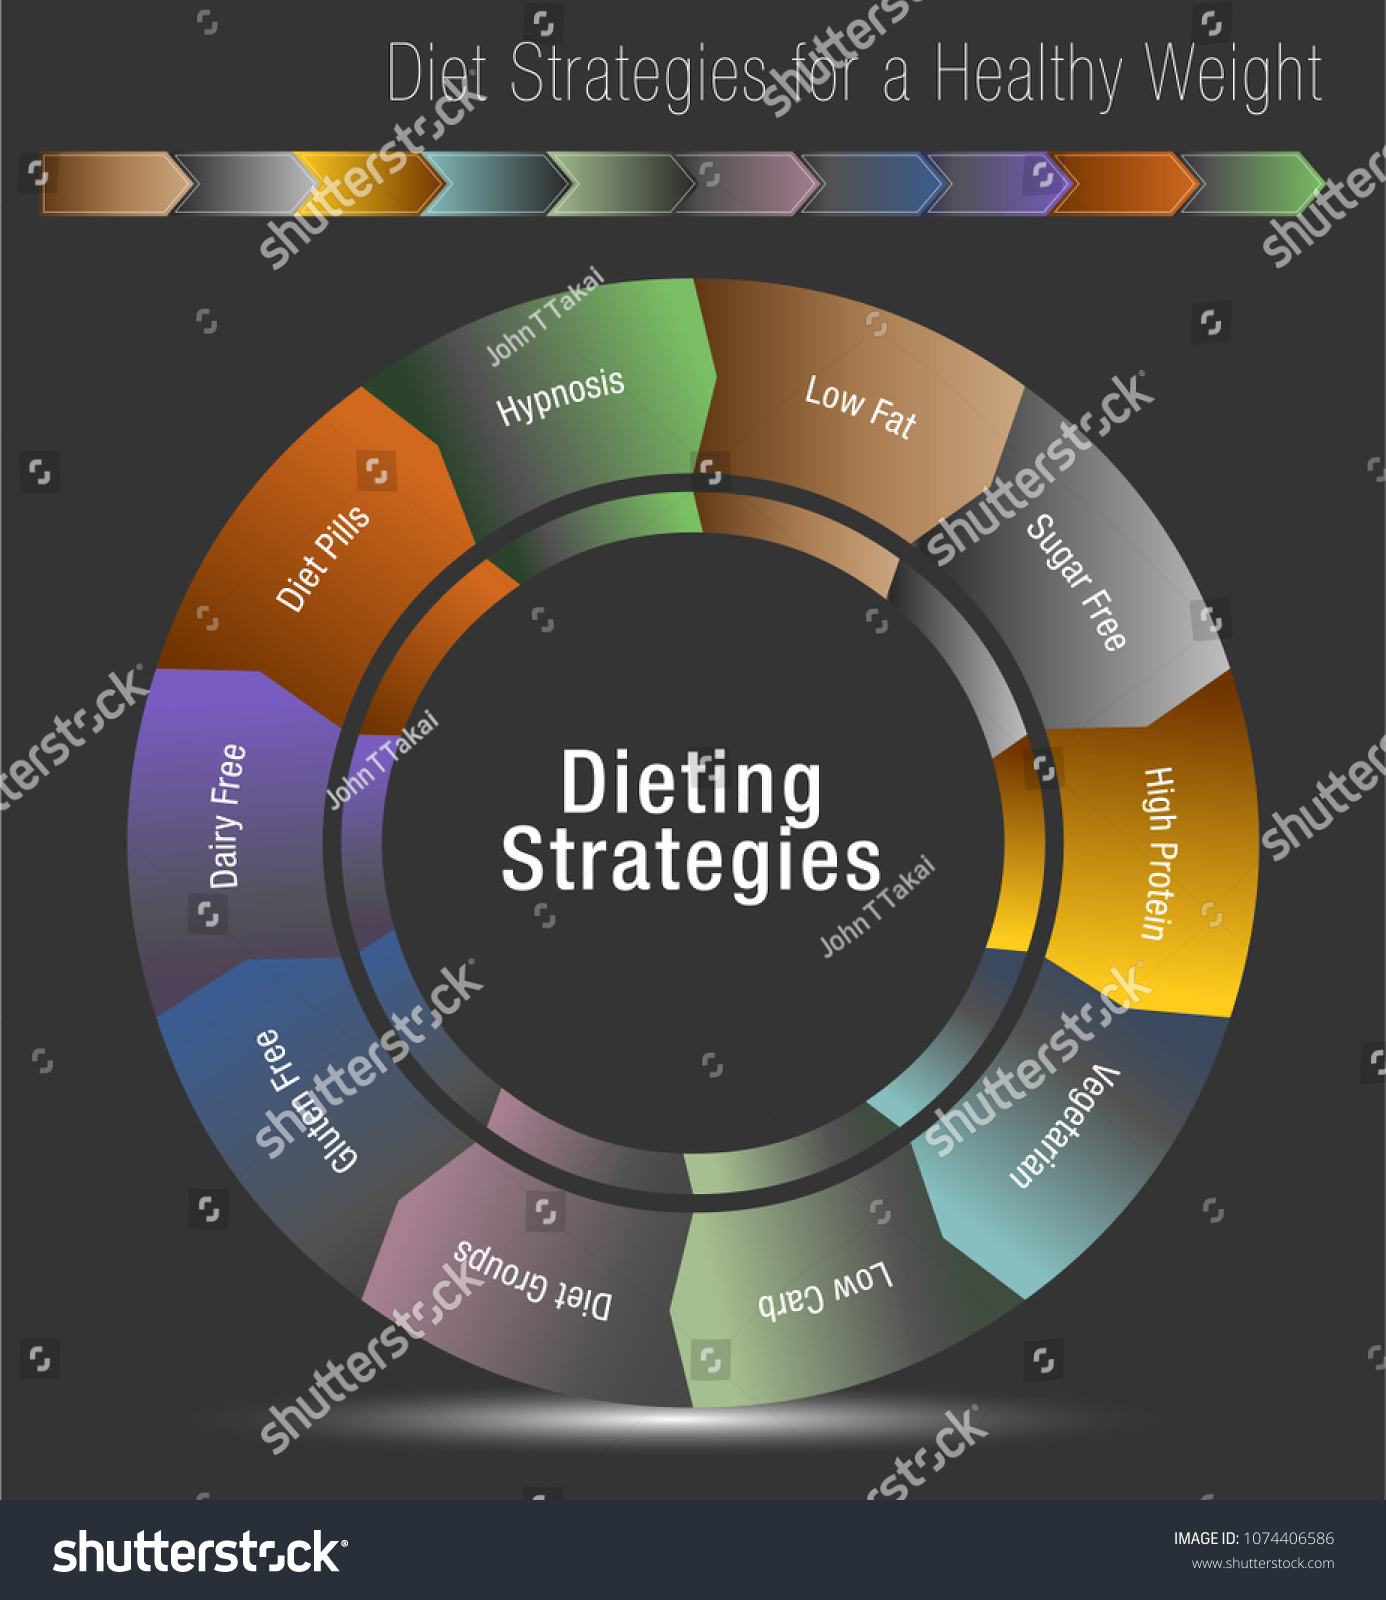 Image Diet Strategies Healthy Weight Chart Stock Vector Royalty